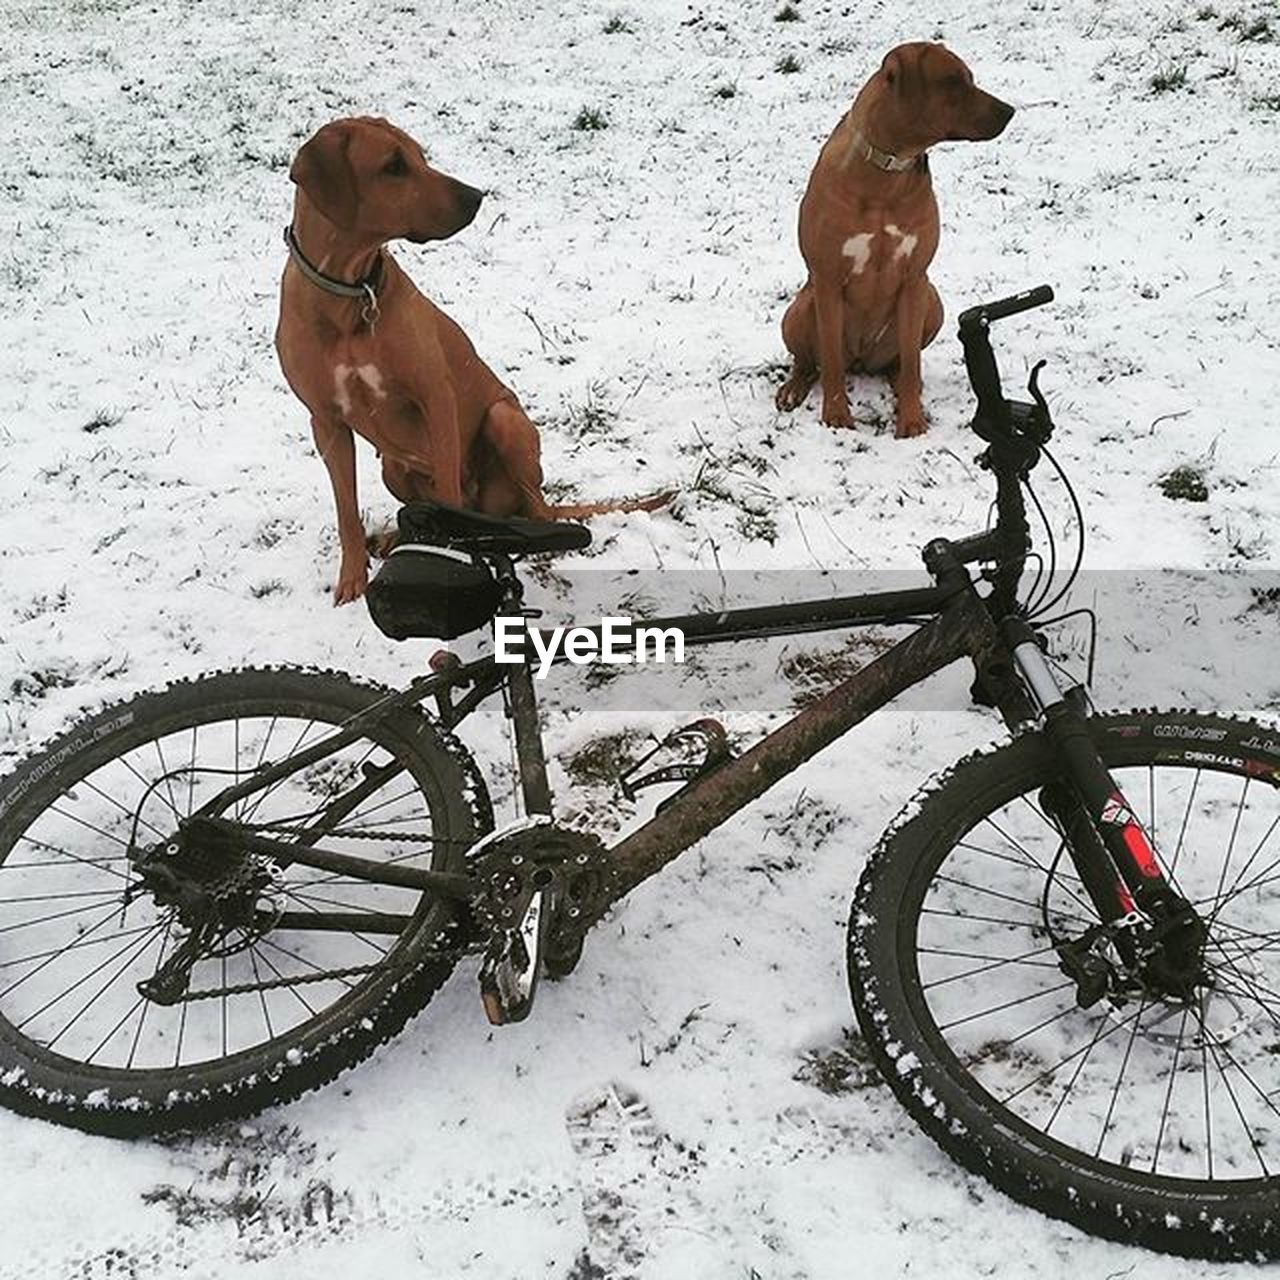 snow, cold temperature, winter, dog, bicycle, weather, domestic animals, animal themes, mammal, transportation, outdoors, pets, no people, day, nature